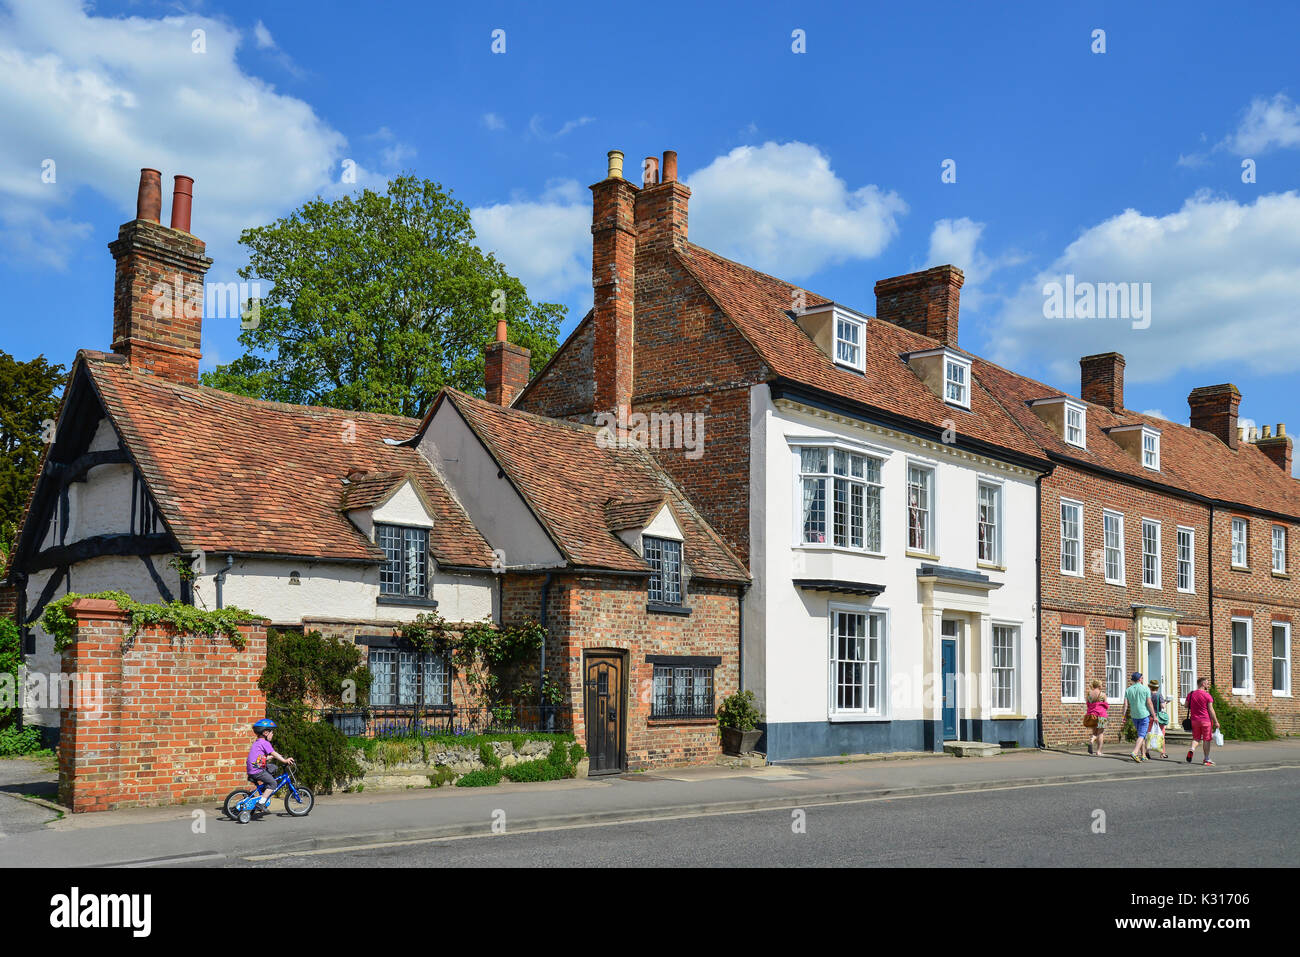 Period cottages on High Street, Thame, Oxfordshire, England, United Kingdom - Stock Image